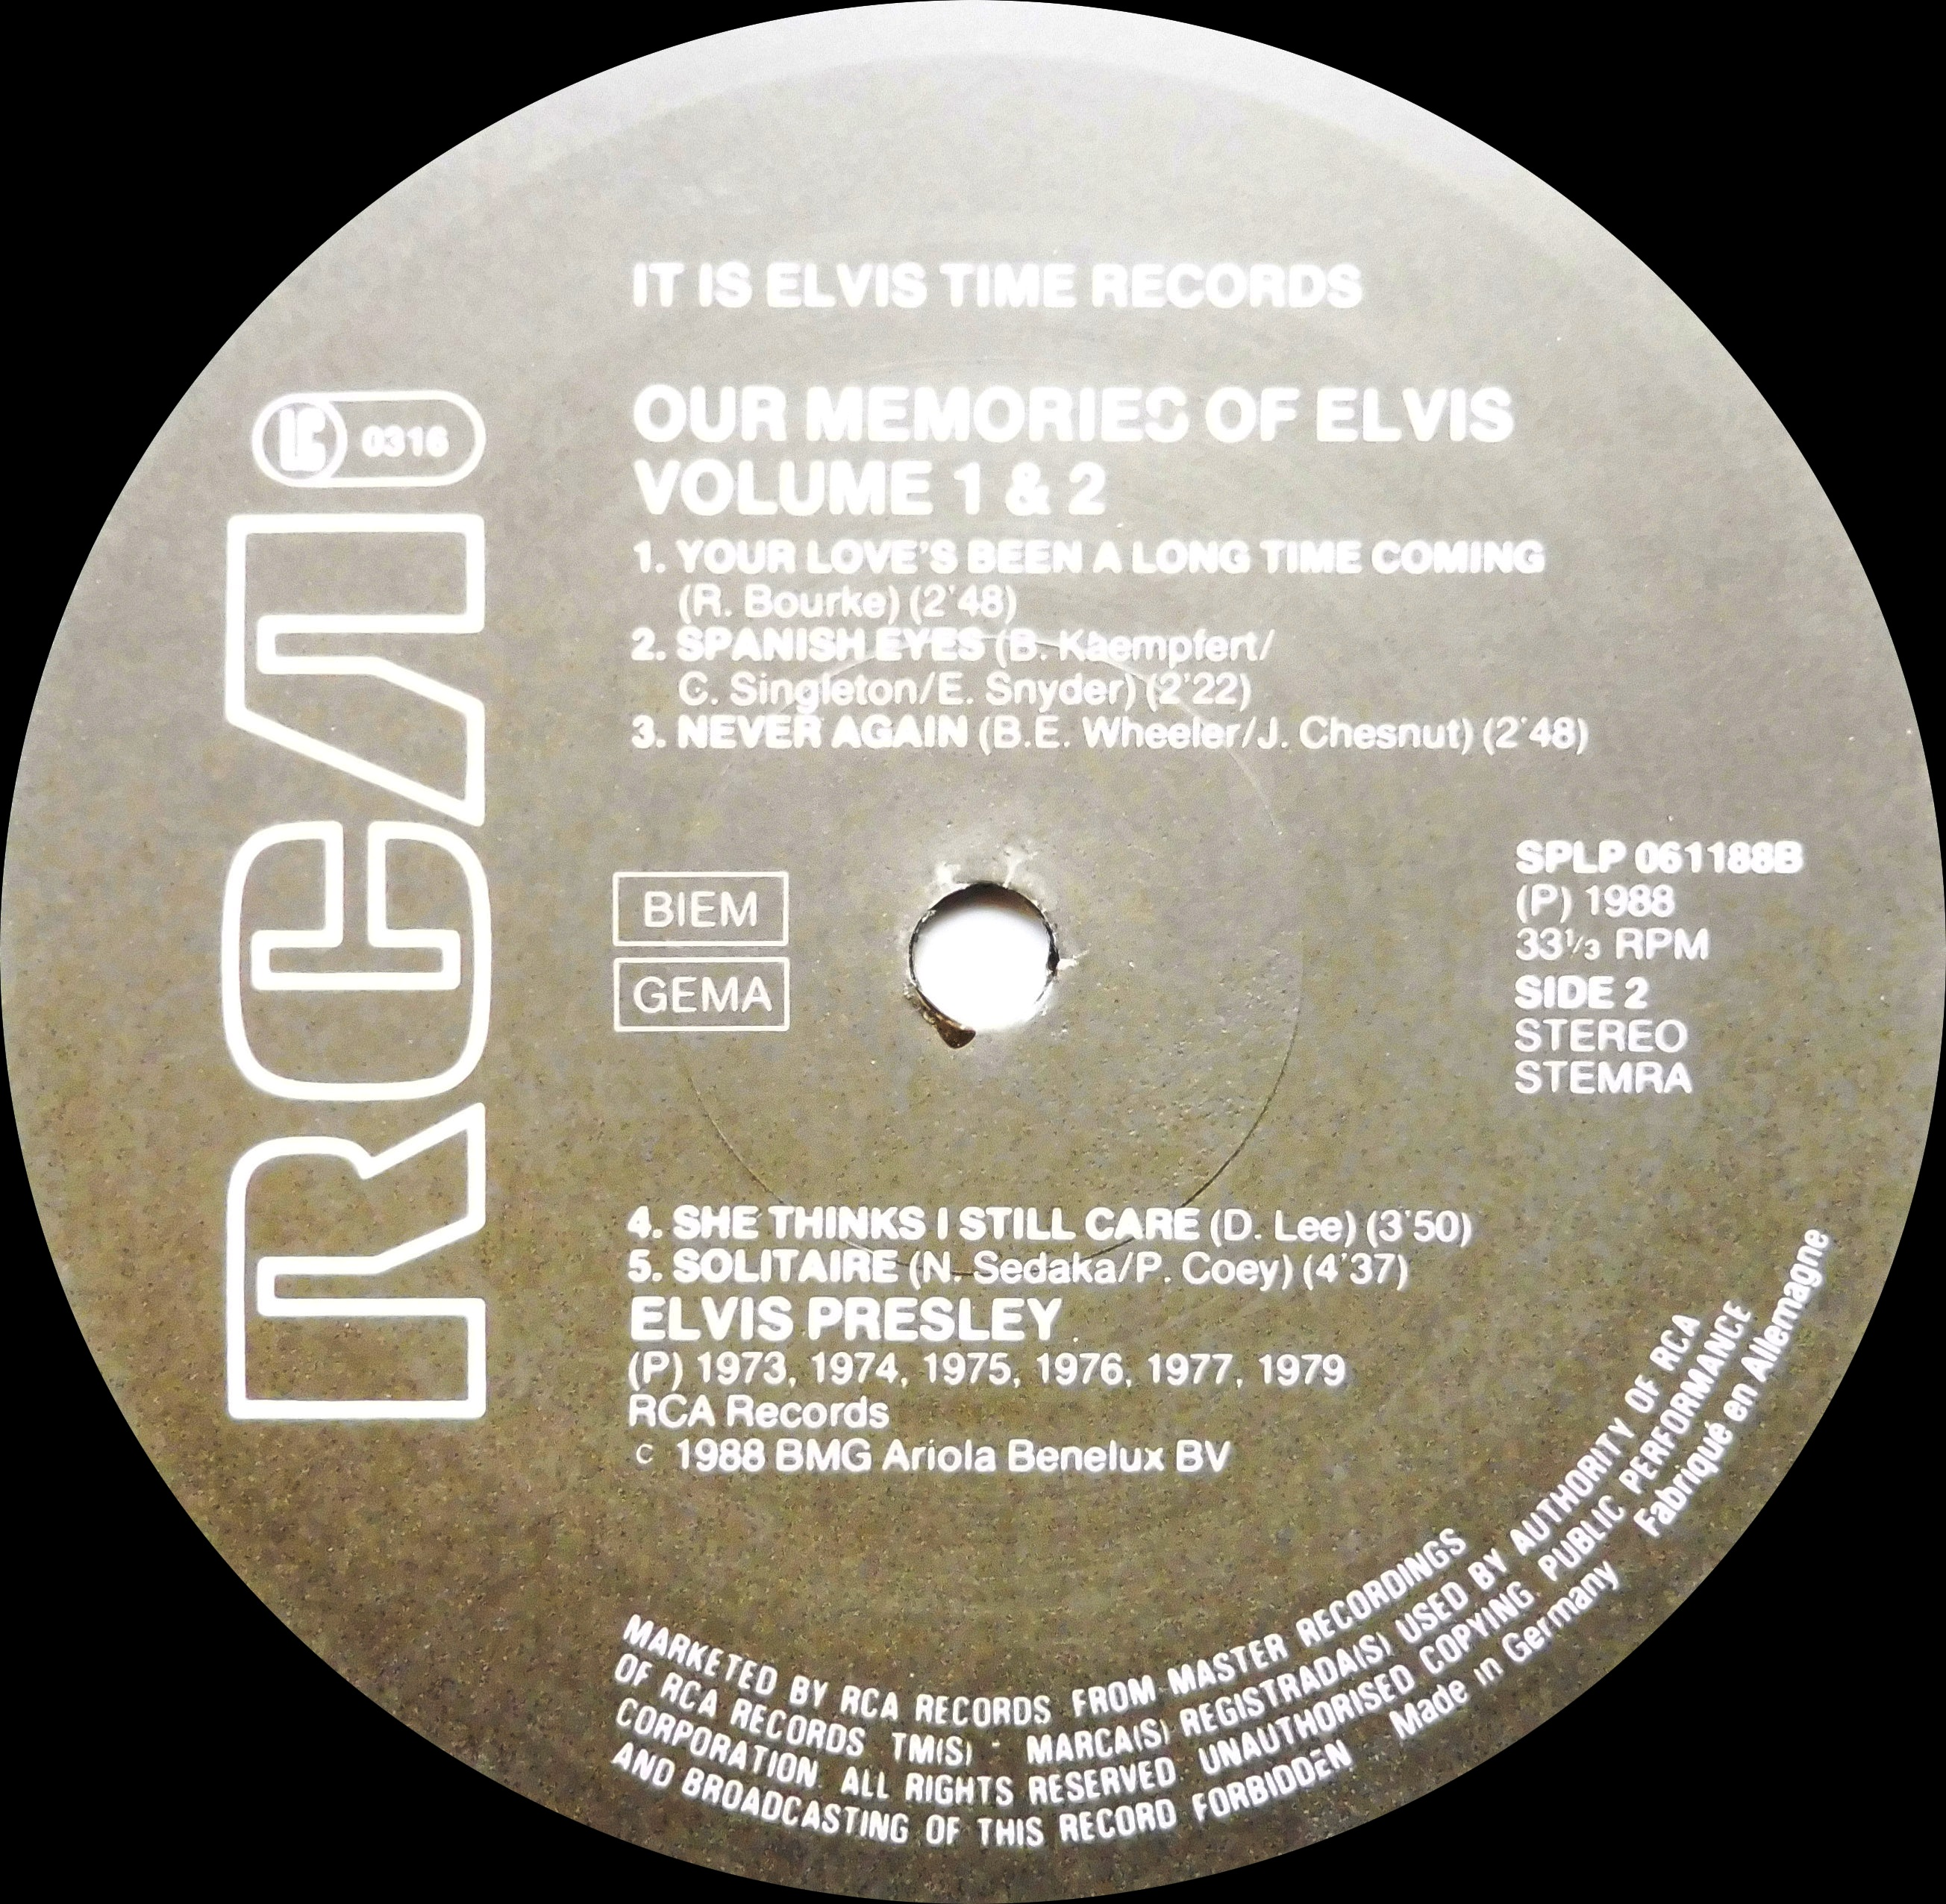 OUR MEMORIES OF ELVIS - Volume 1 & 2 Omoevol1und2nlside21hjuw